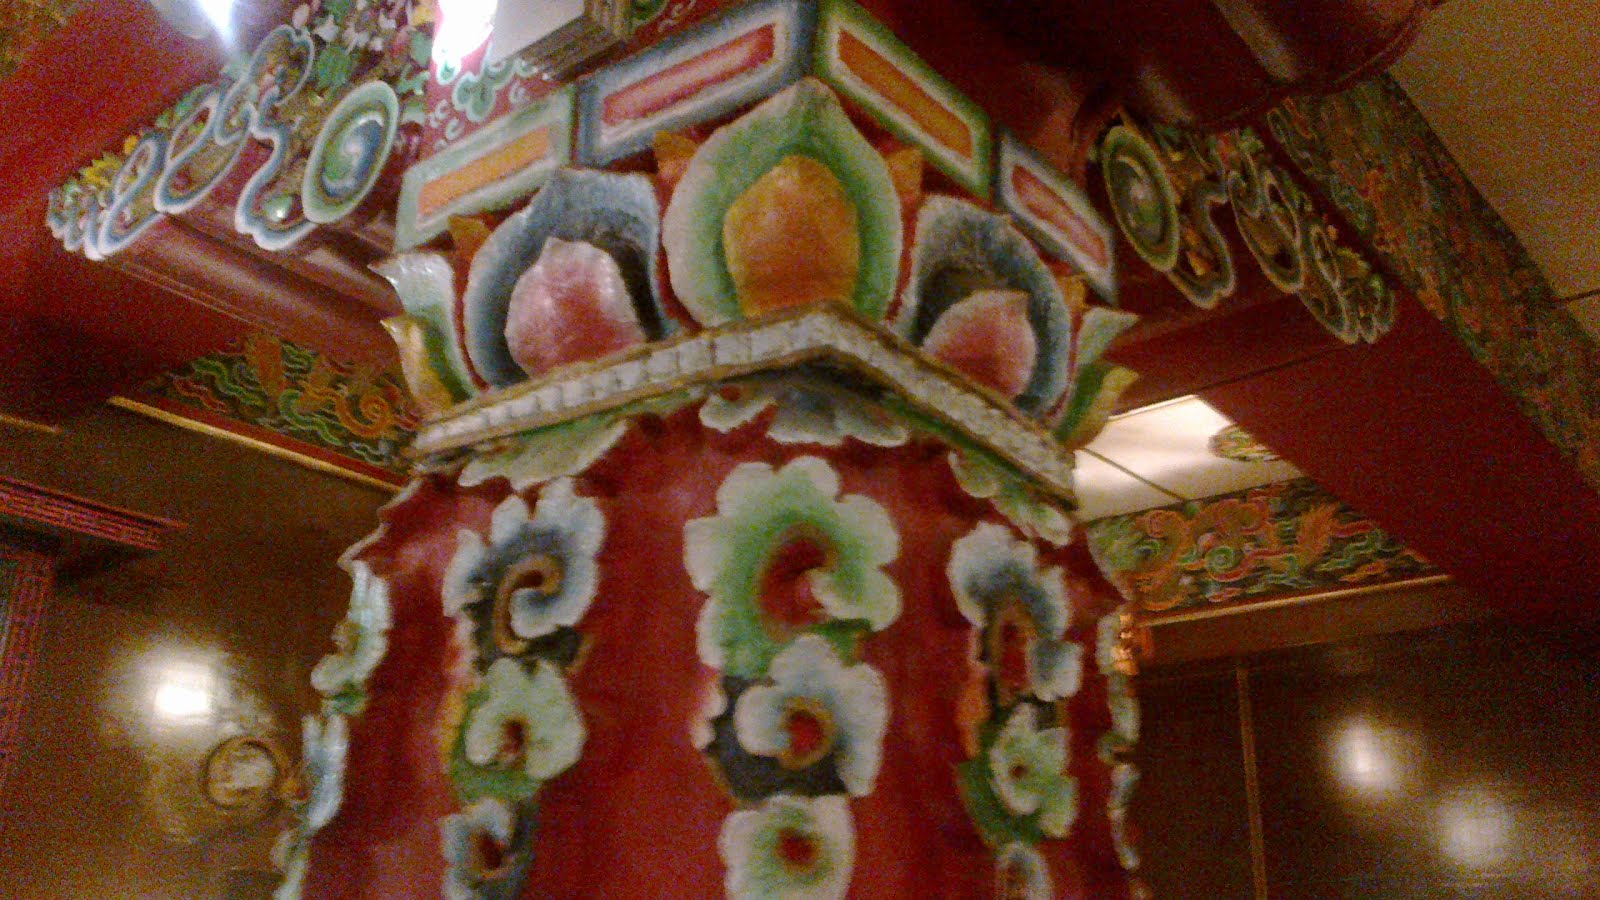 Typical Sikkim Pillar Carving and painting